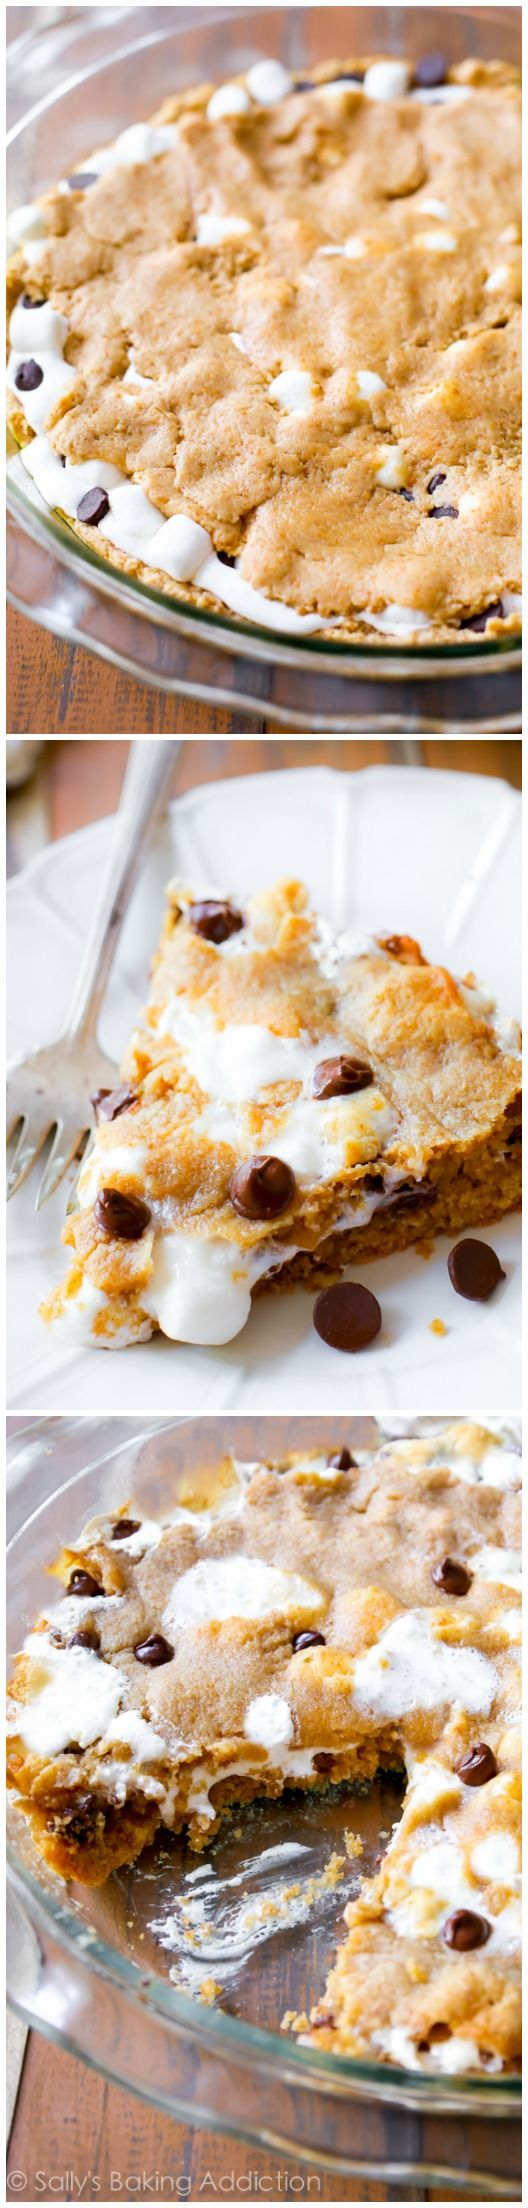 The best way to eat a s'more! When it's baked into a giant cookie cake.